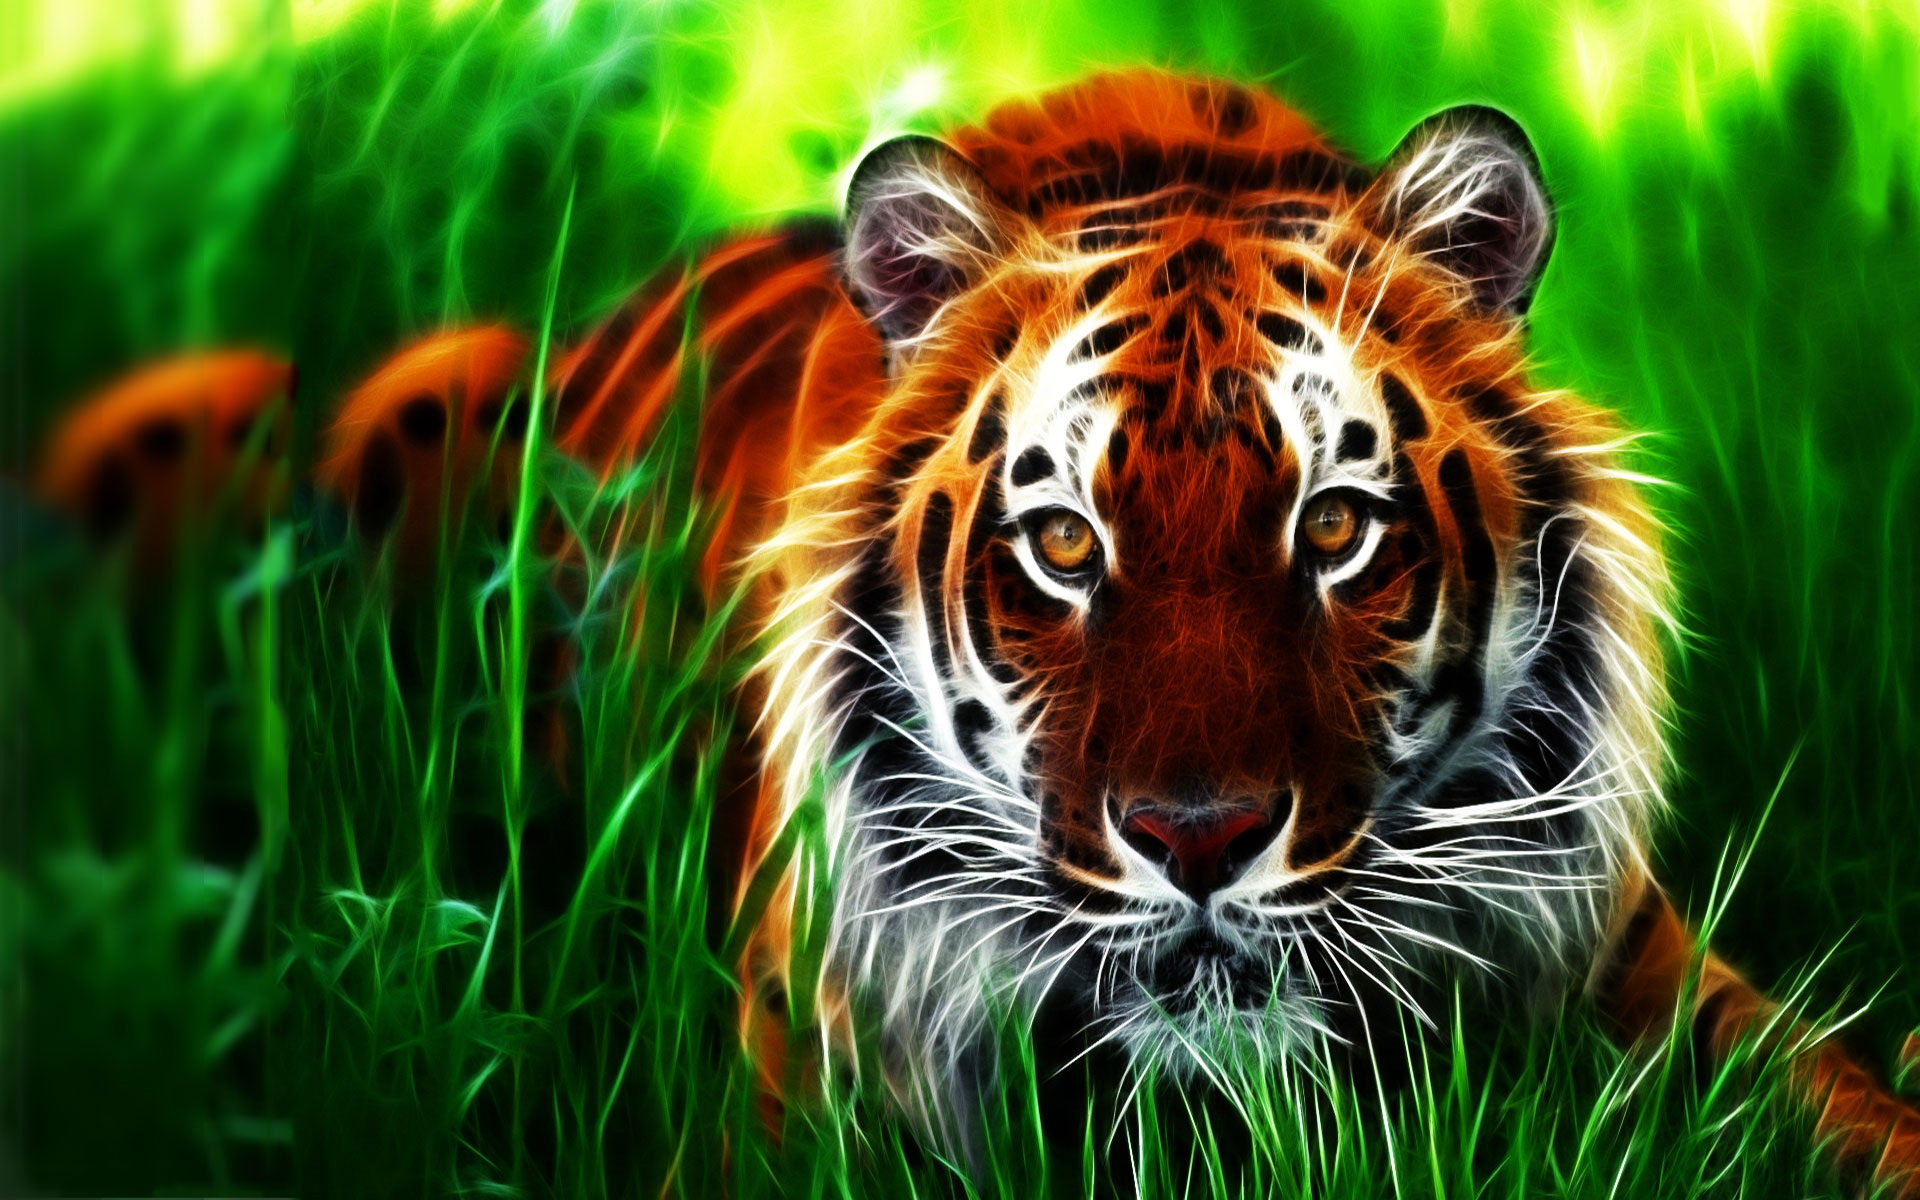 Moving Animal Wallpapers